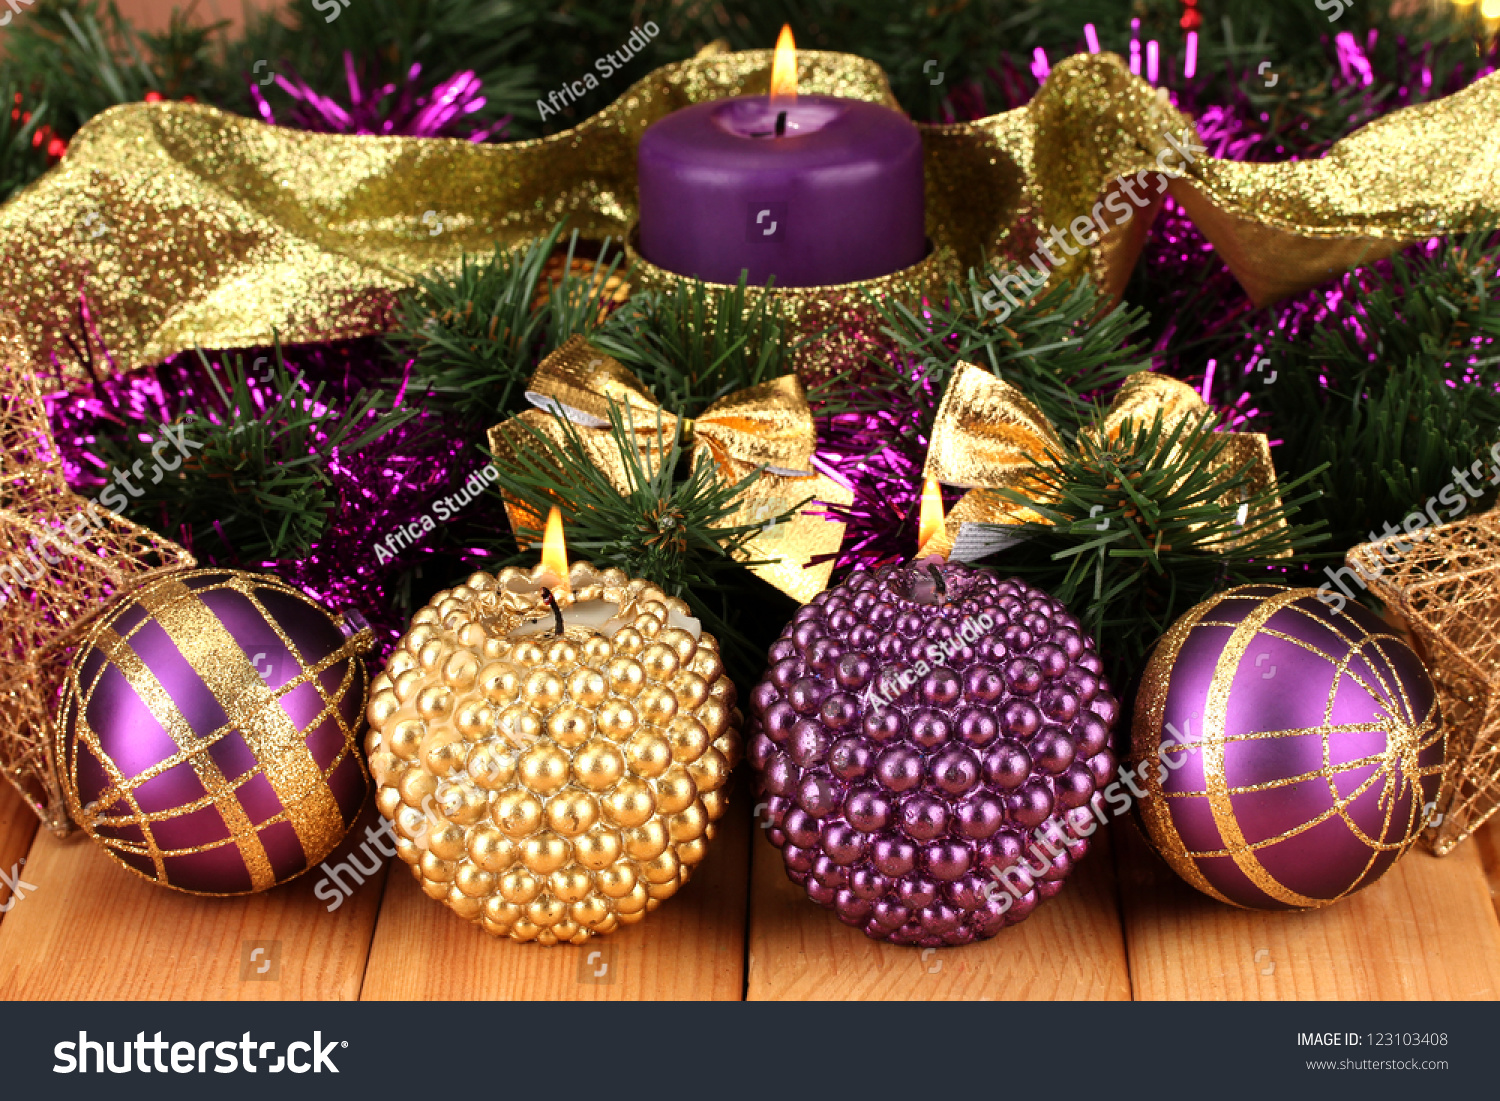 christmas composition with candles and decorations in purple and gold colors on wooden background ez canvas